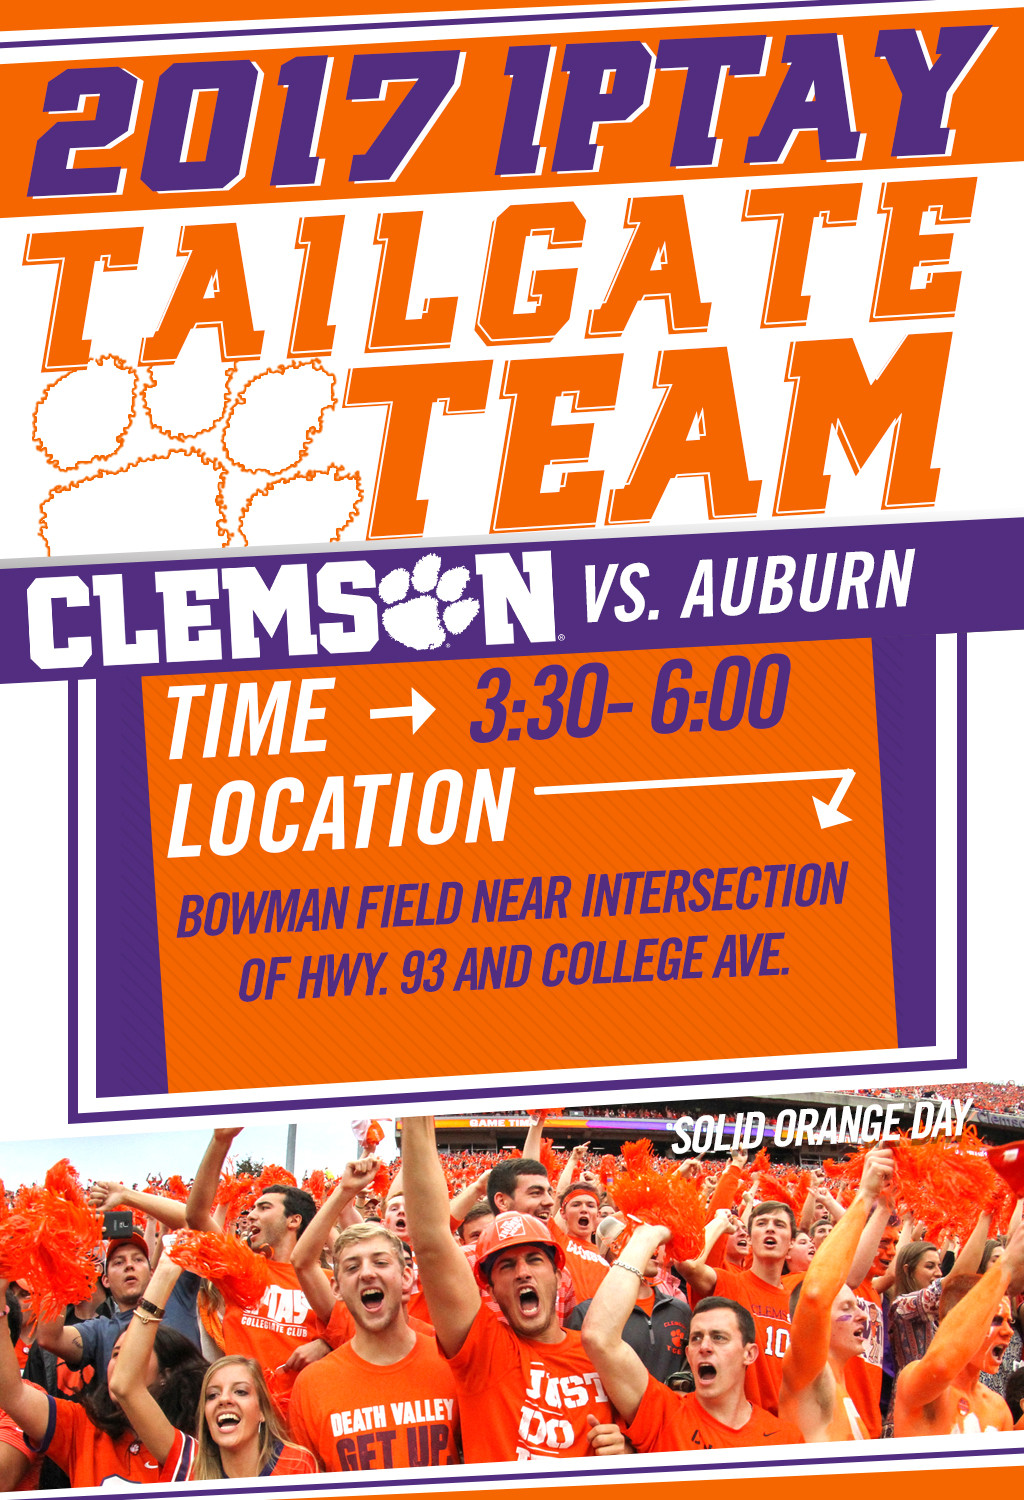 Tailgate Team Heads East For Primetime ACC/SEC Match-up